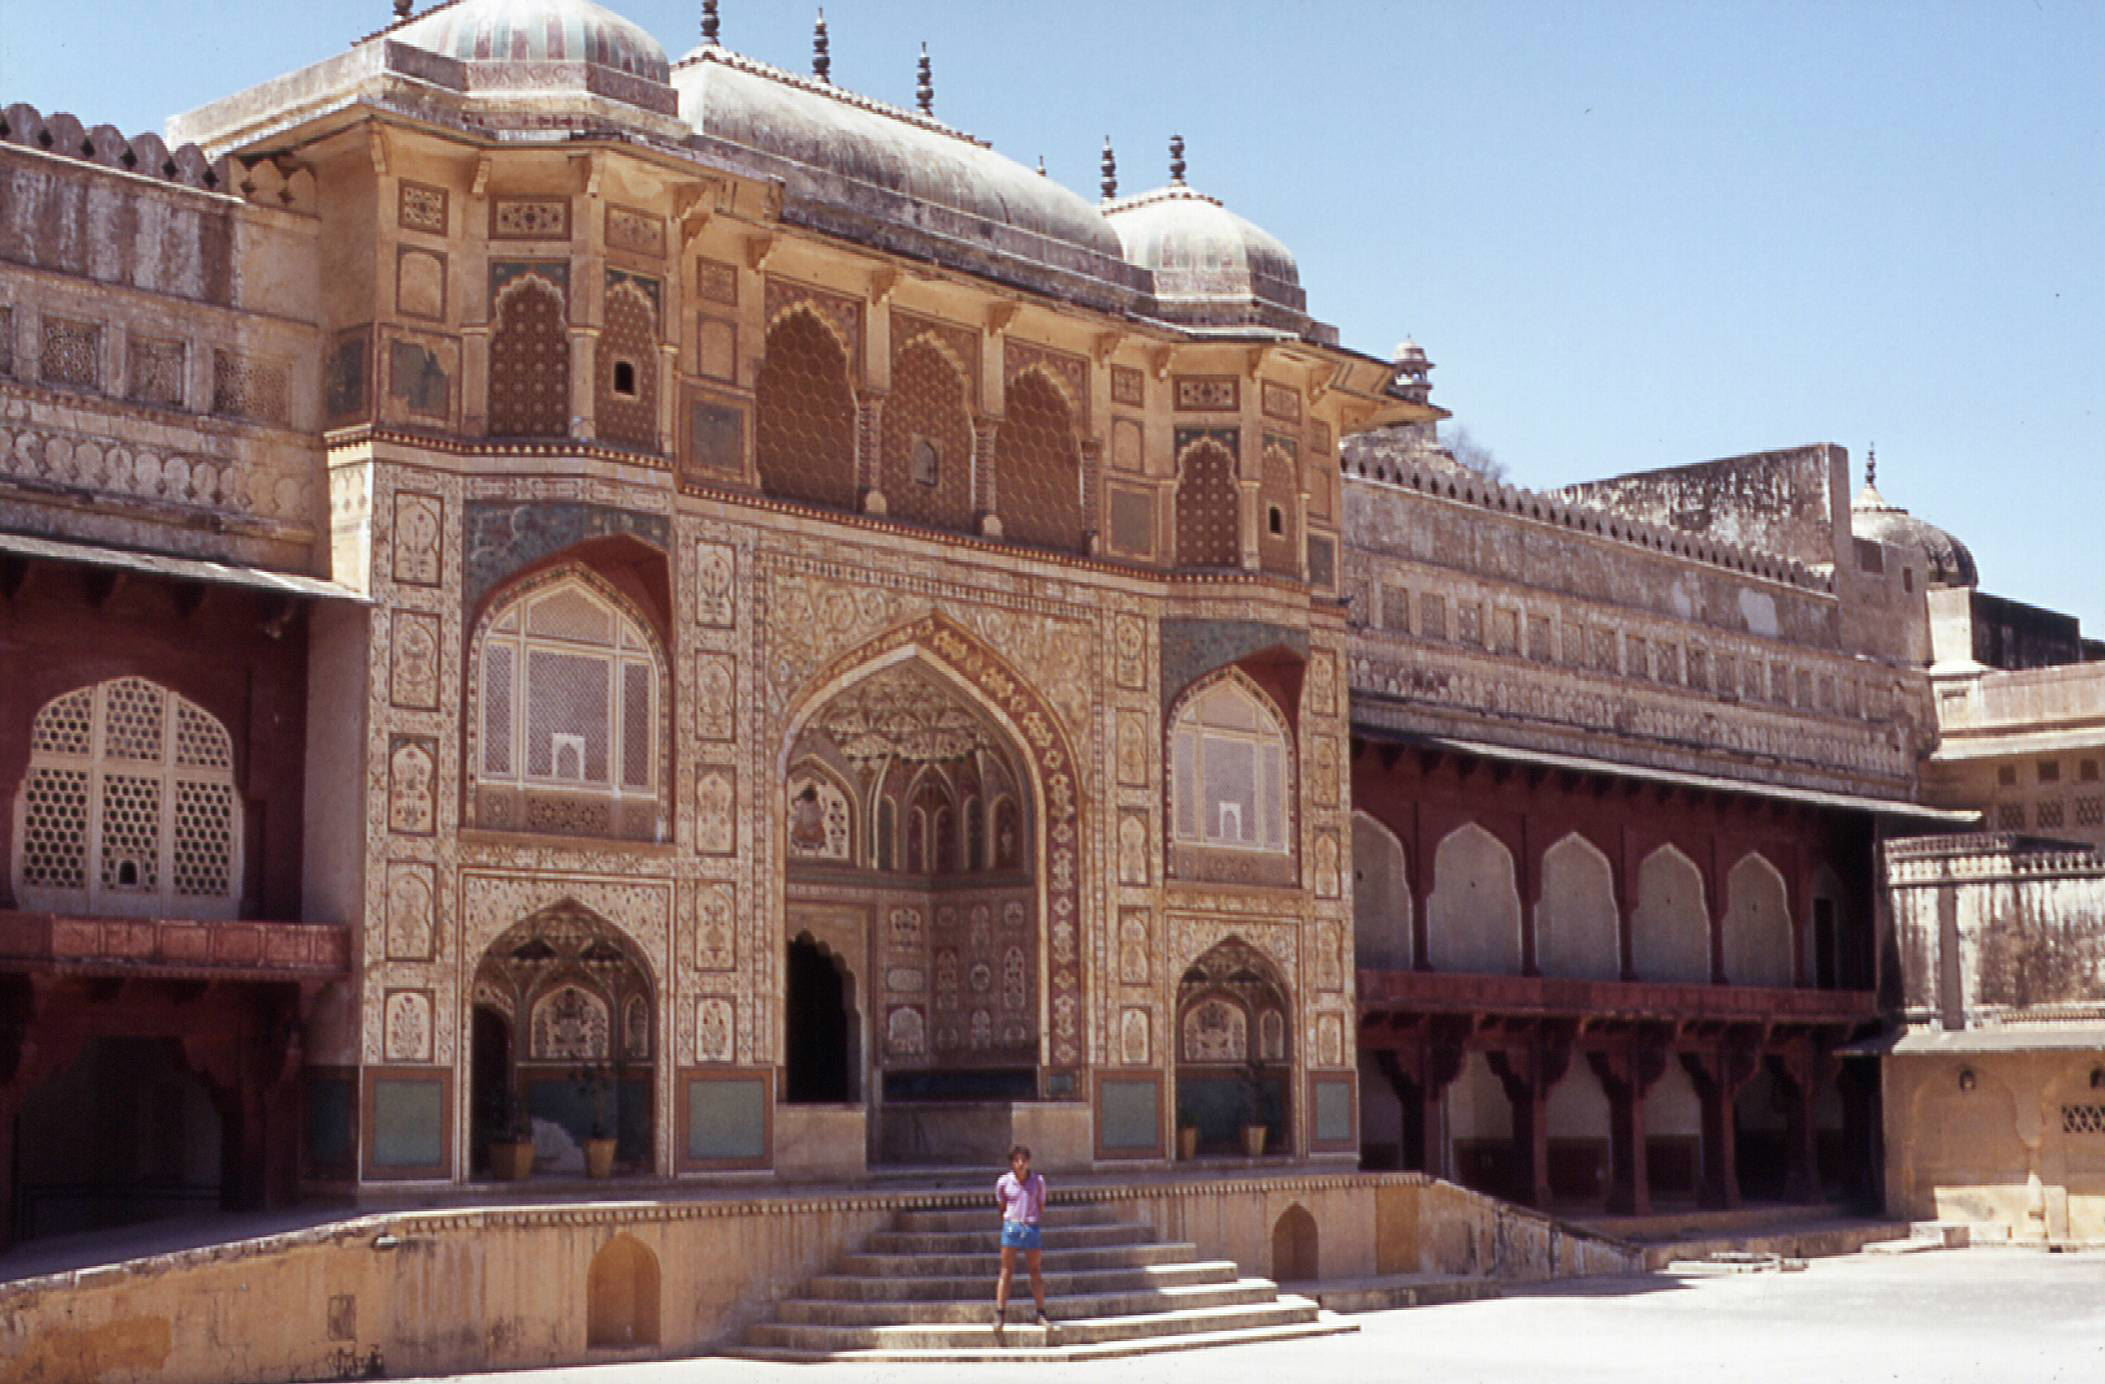 The Ganesh Pol of Amber fort. Amber is now part of Jaipur Municipal Corporation.